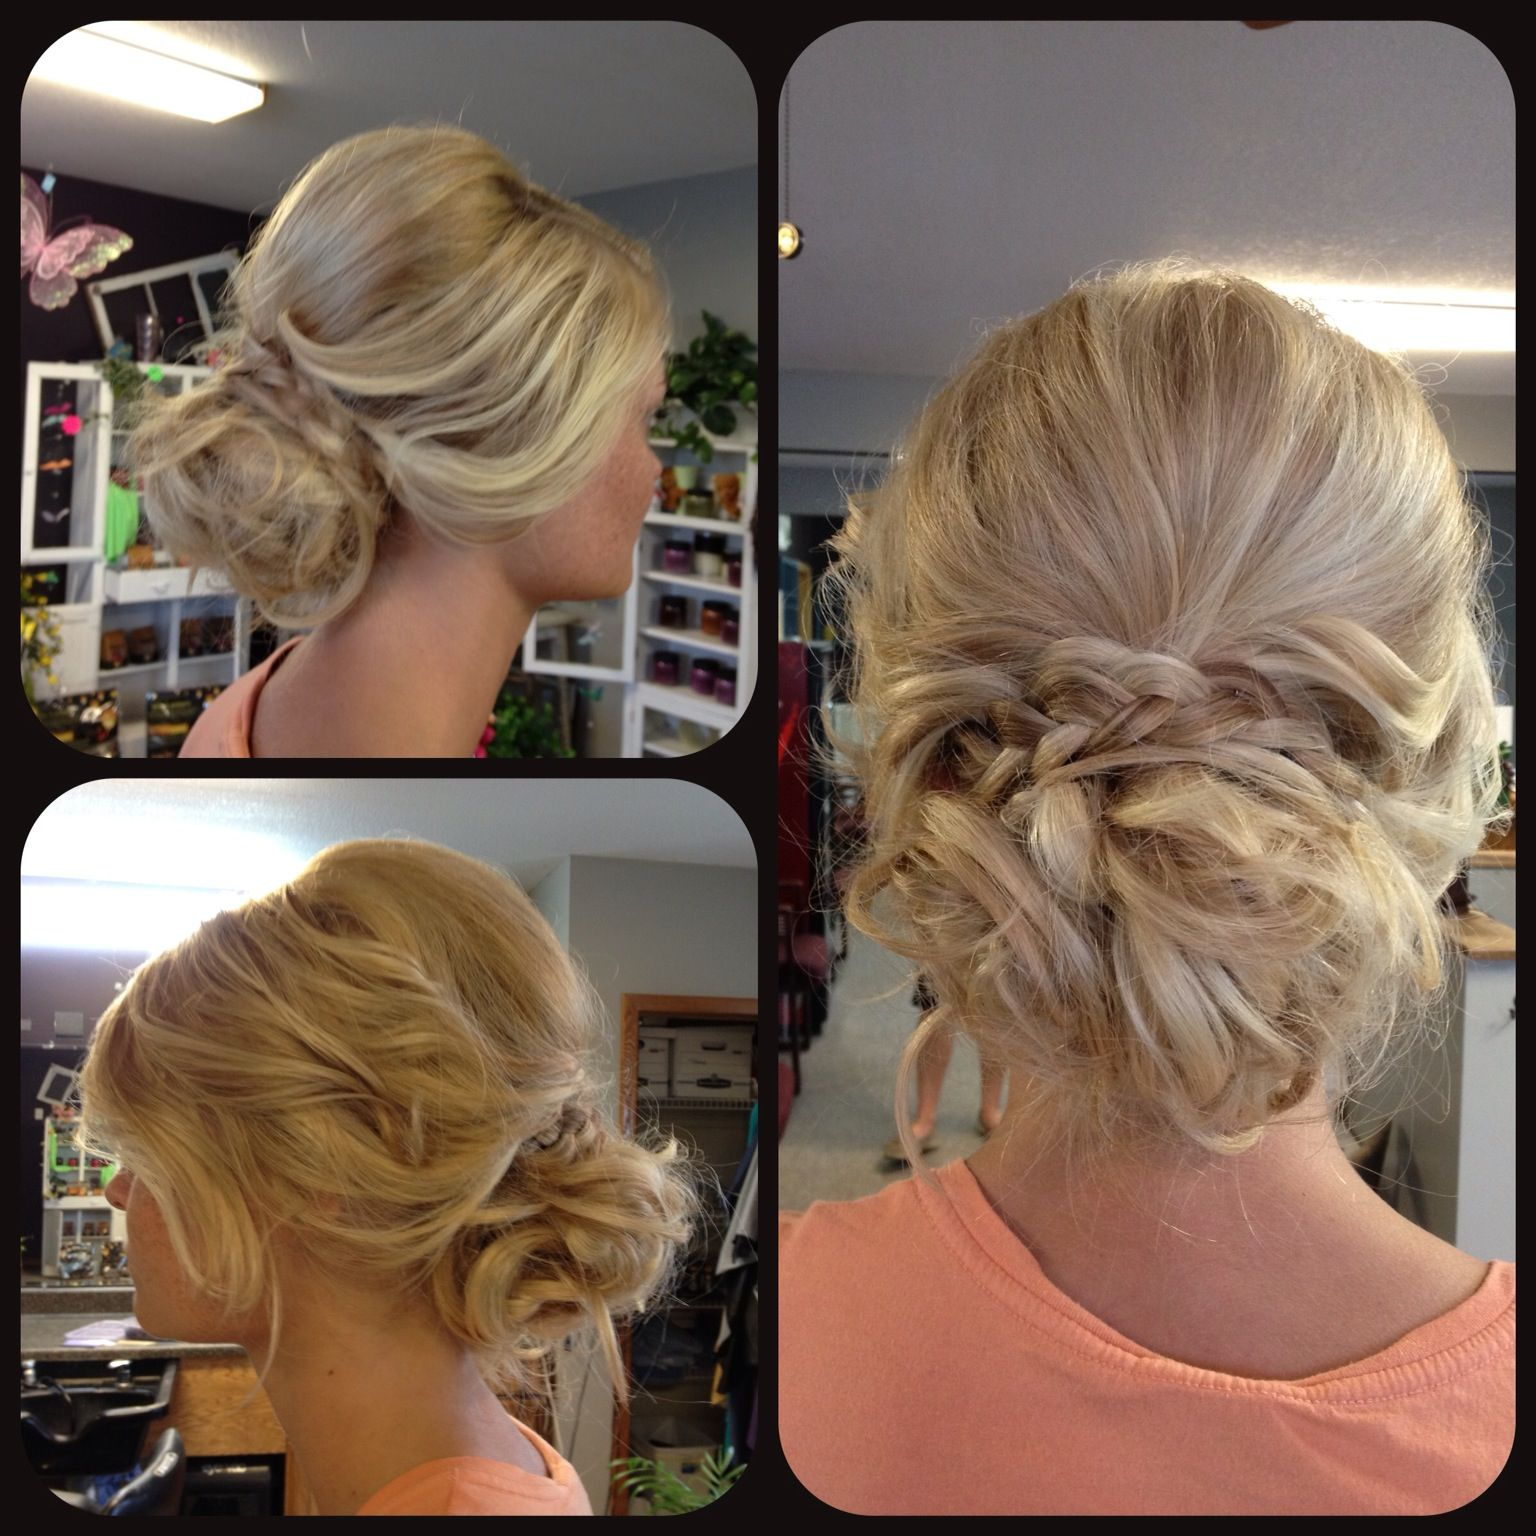 Wedding Hairstyle Upstyle: Prom Updo Upstyle Loose Messy Curly Curled Braid Blonde